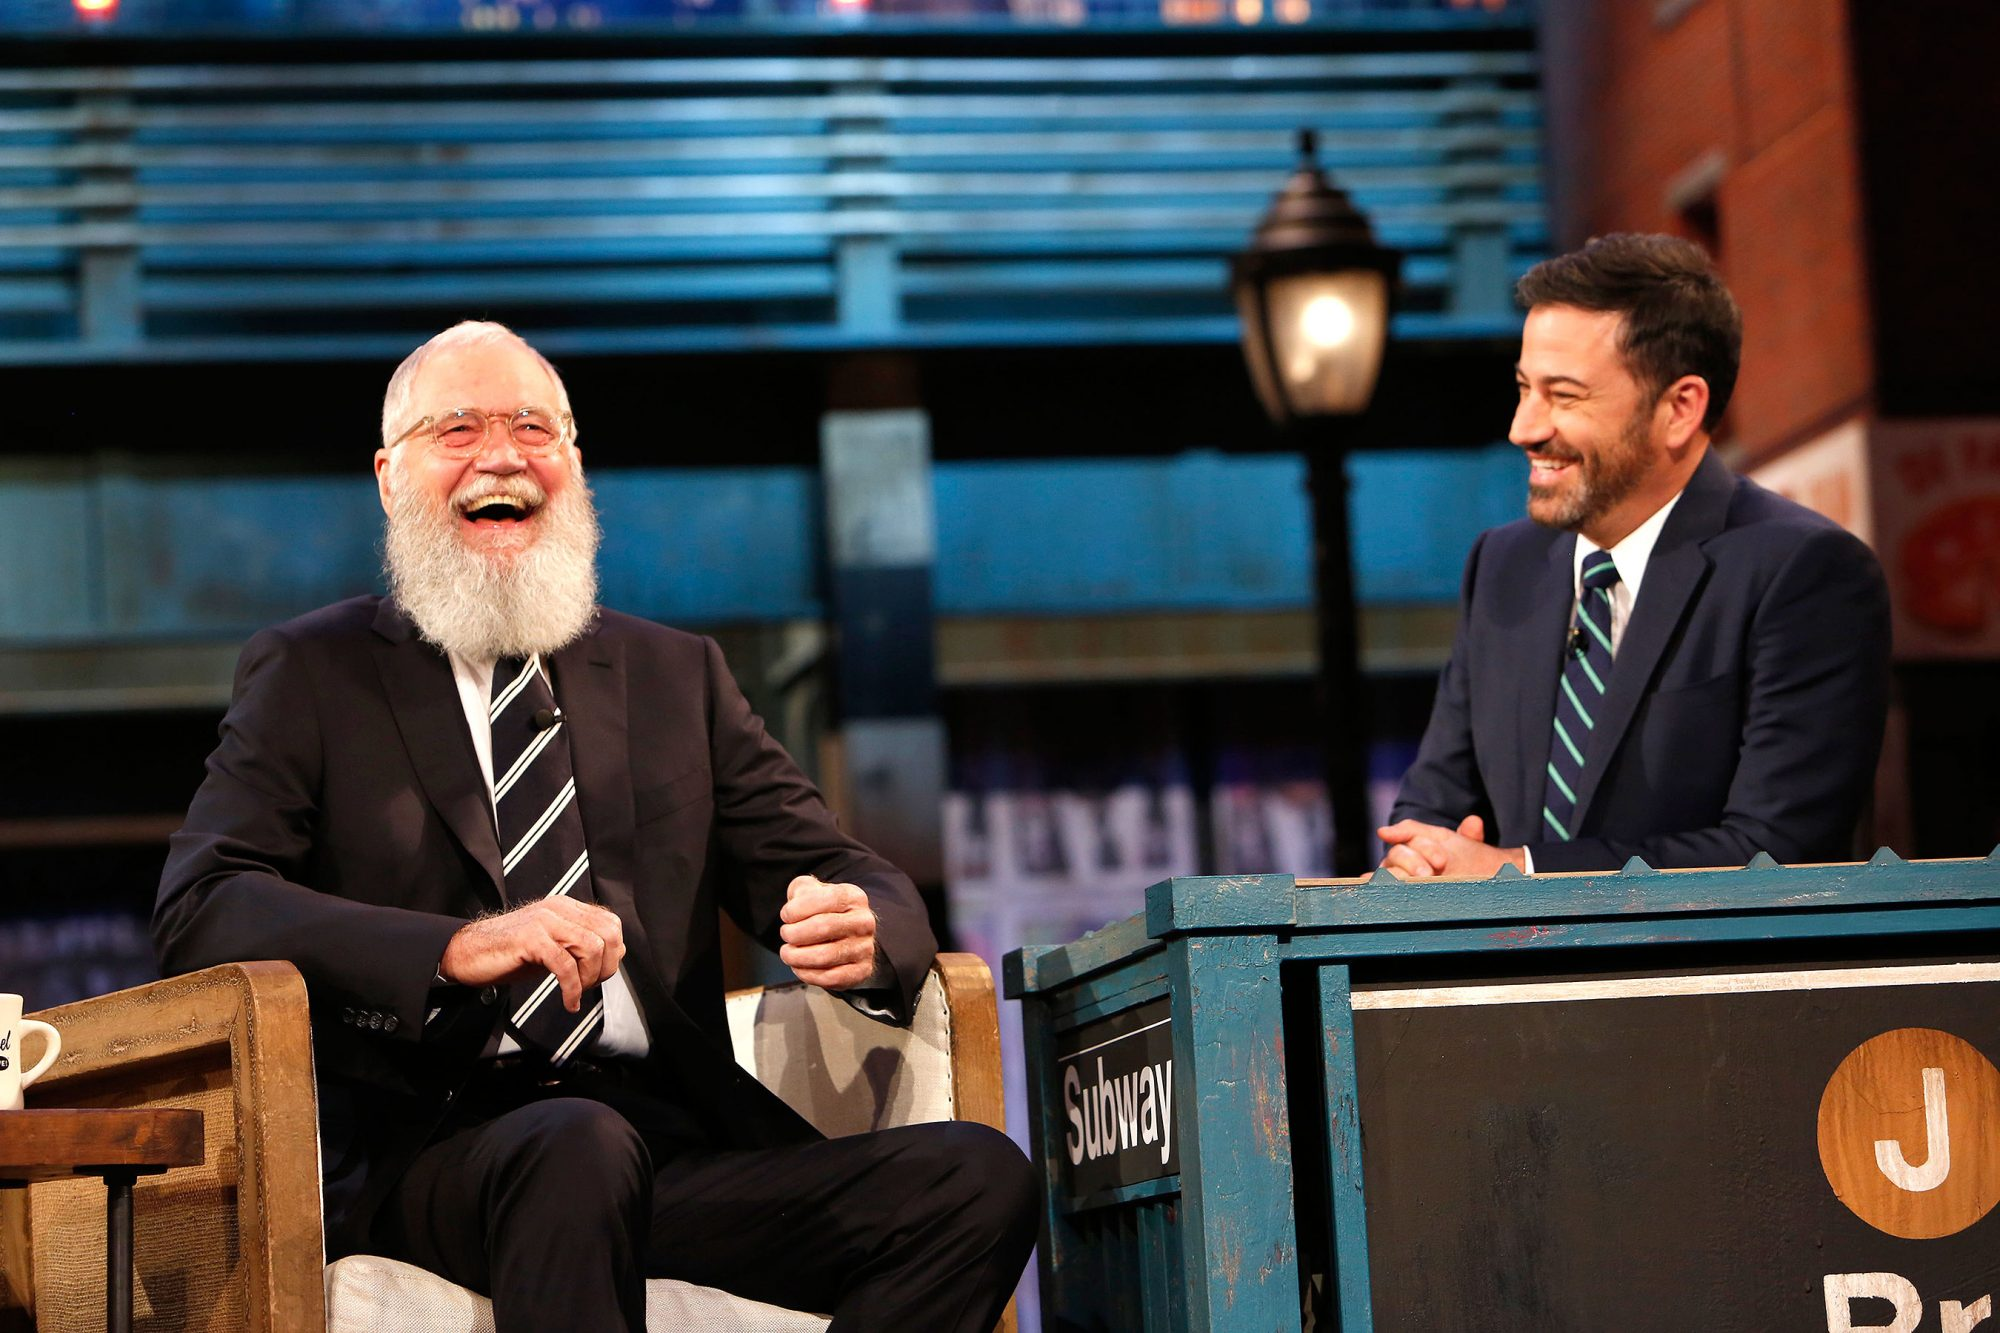 DAVID LETTERMAN, JIMMY KIMMEL